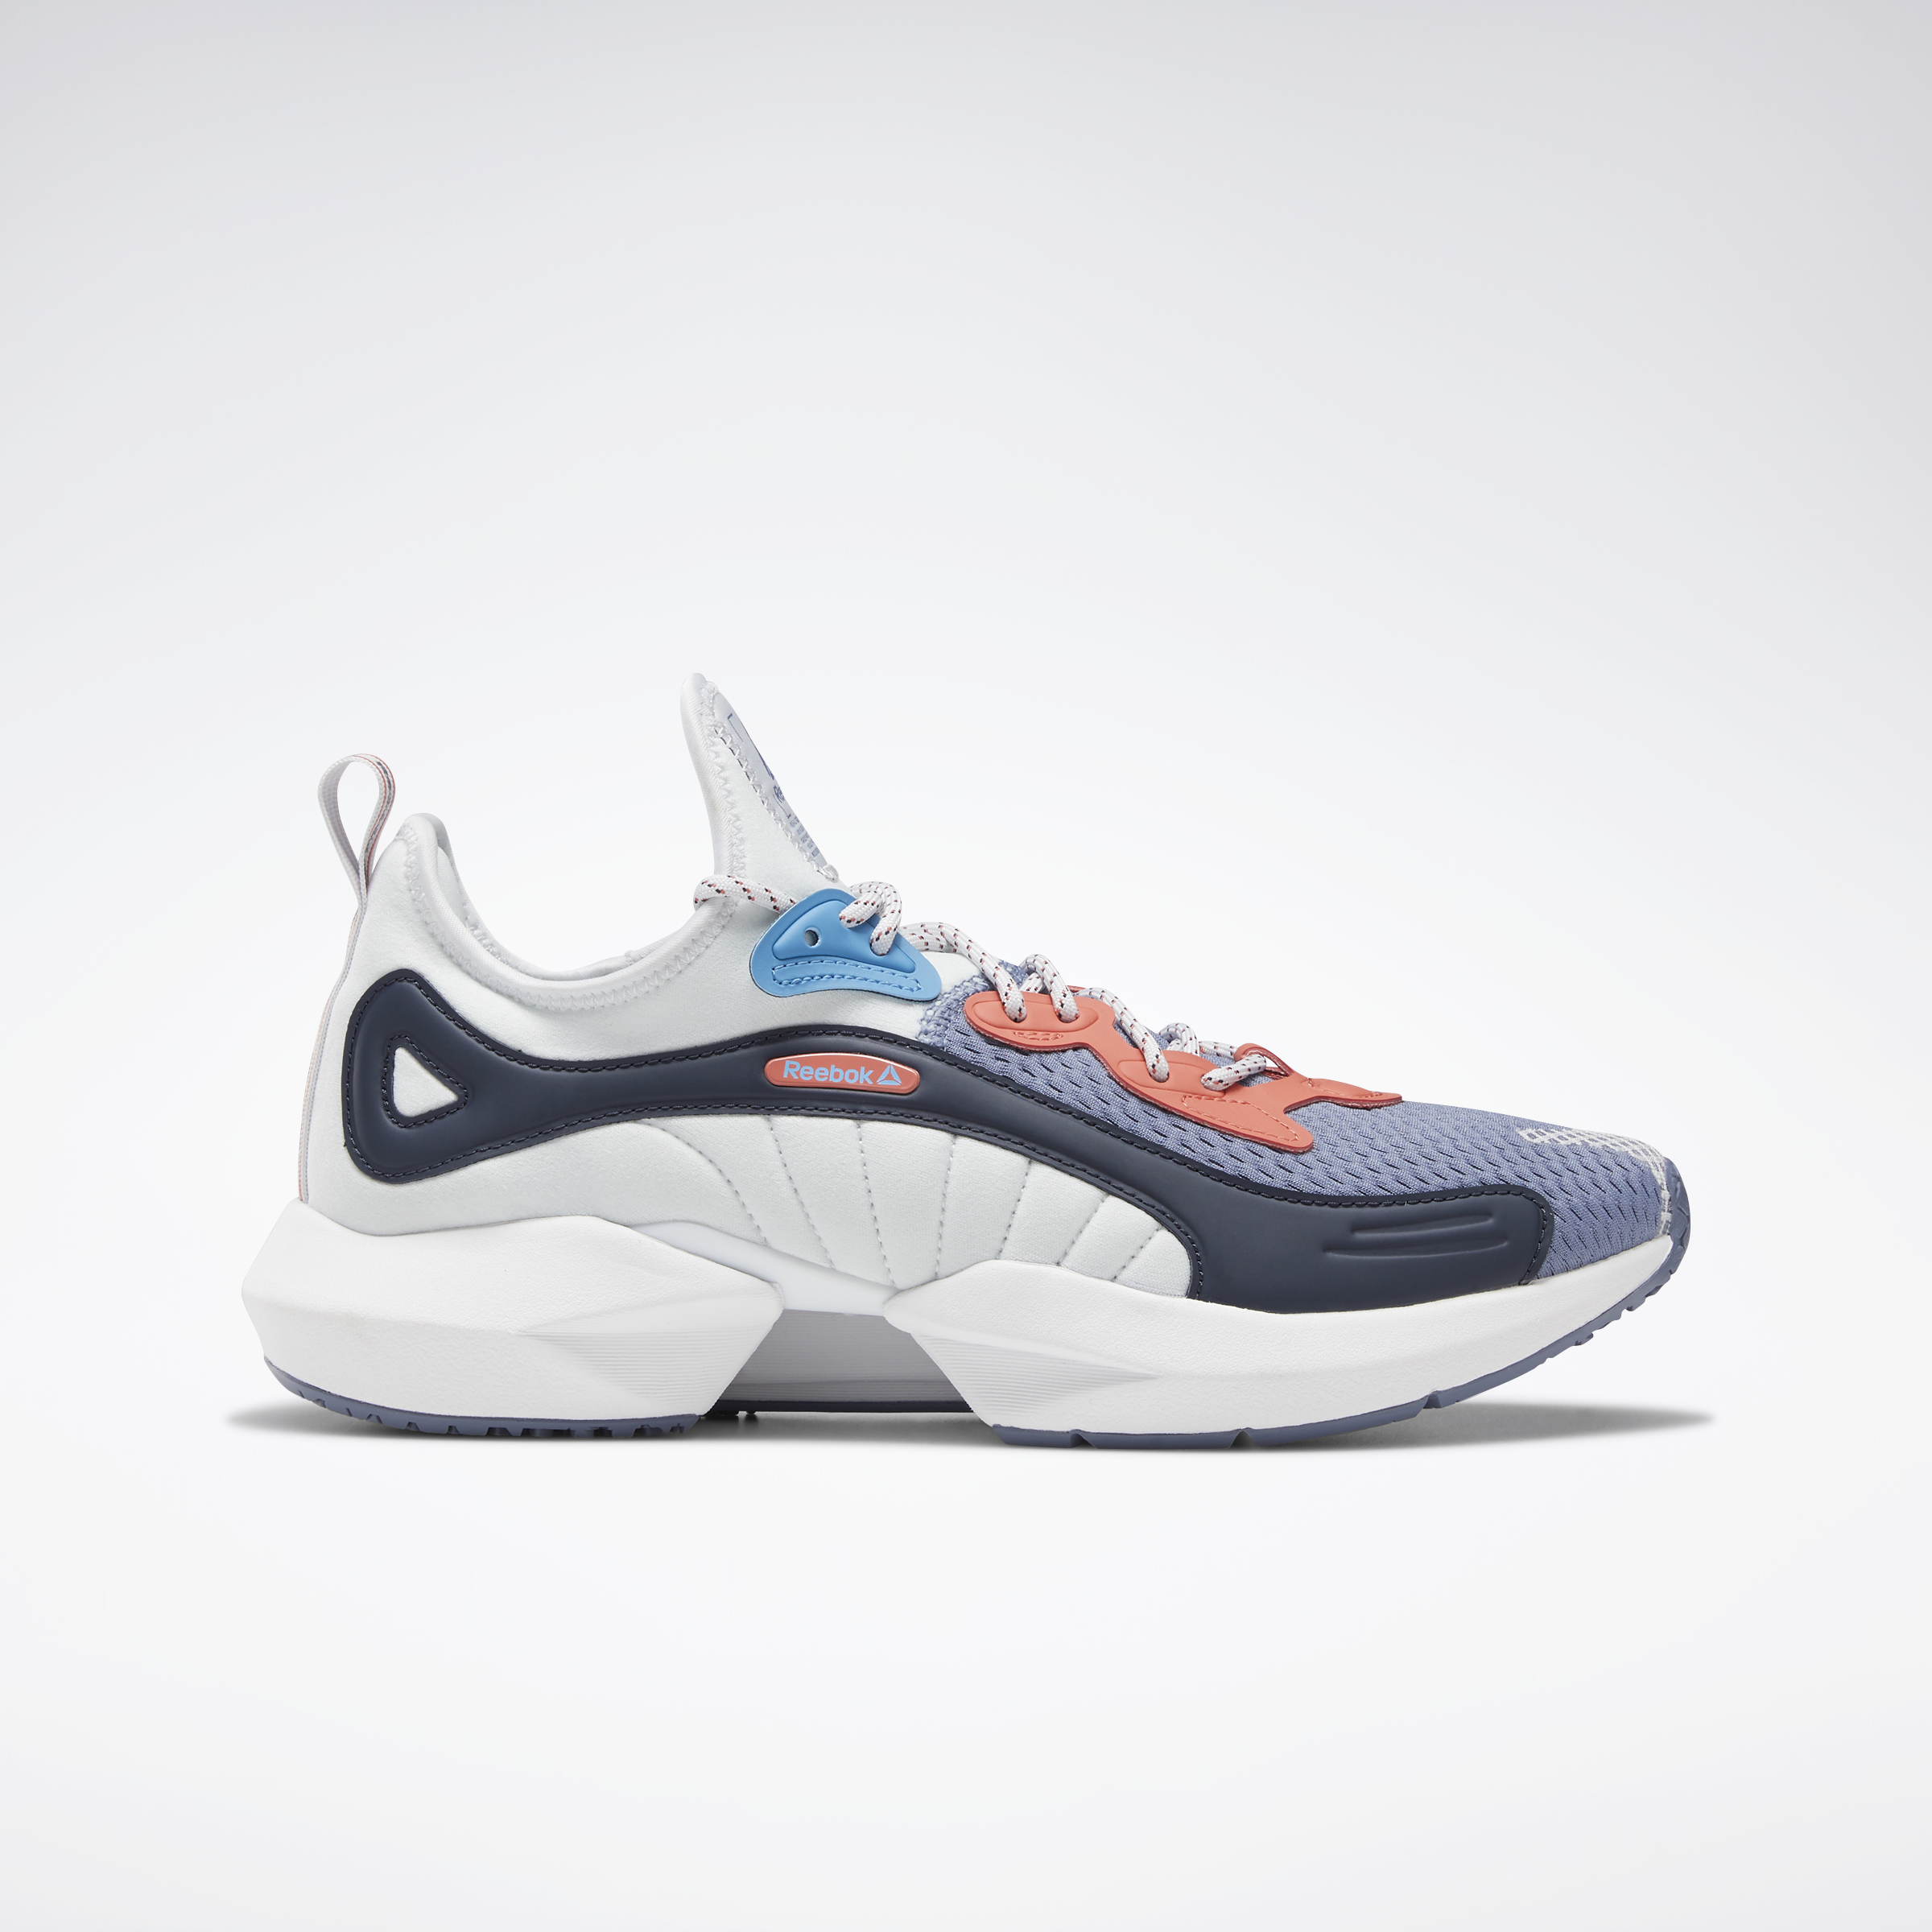 Reebok-Men-039-s-Sole-Fury-00-Shoes thumbnail 19